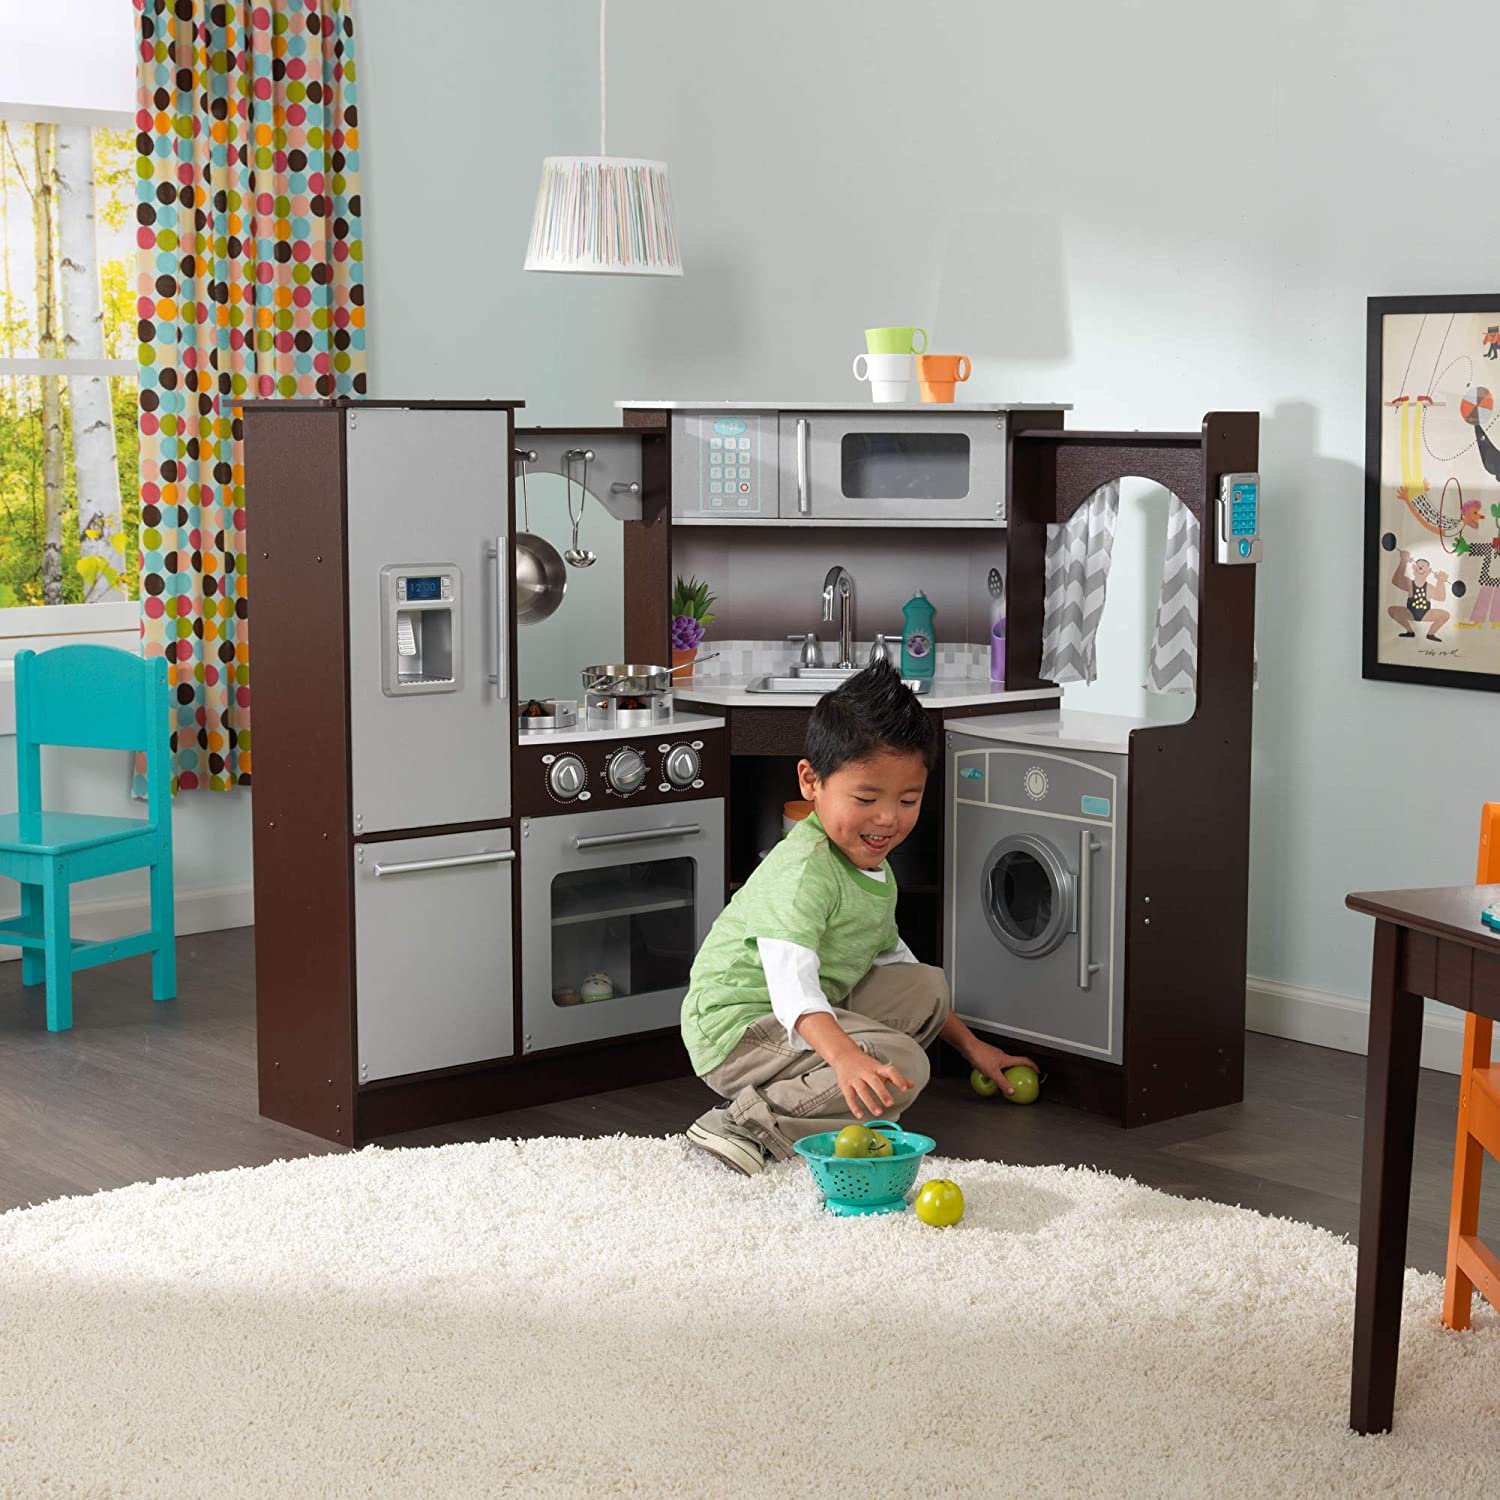 Amazon Com Kidkraft Ultimate Corner Play Kitchen With Lights Sounds Espresso 53365 Toys Games